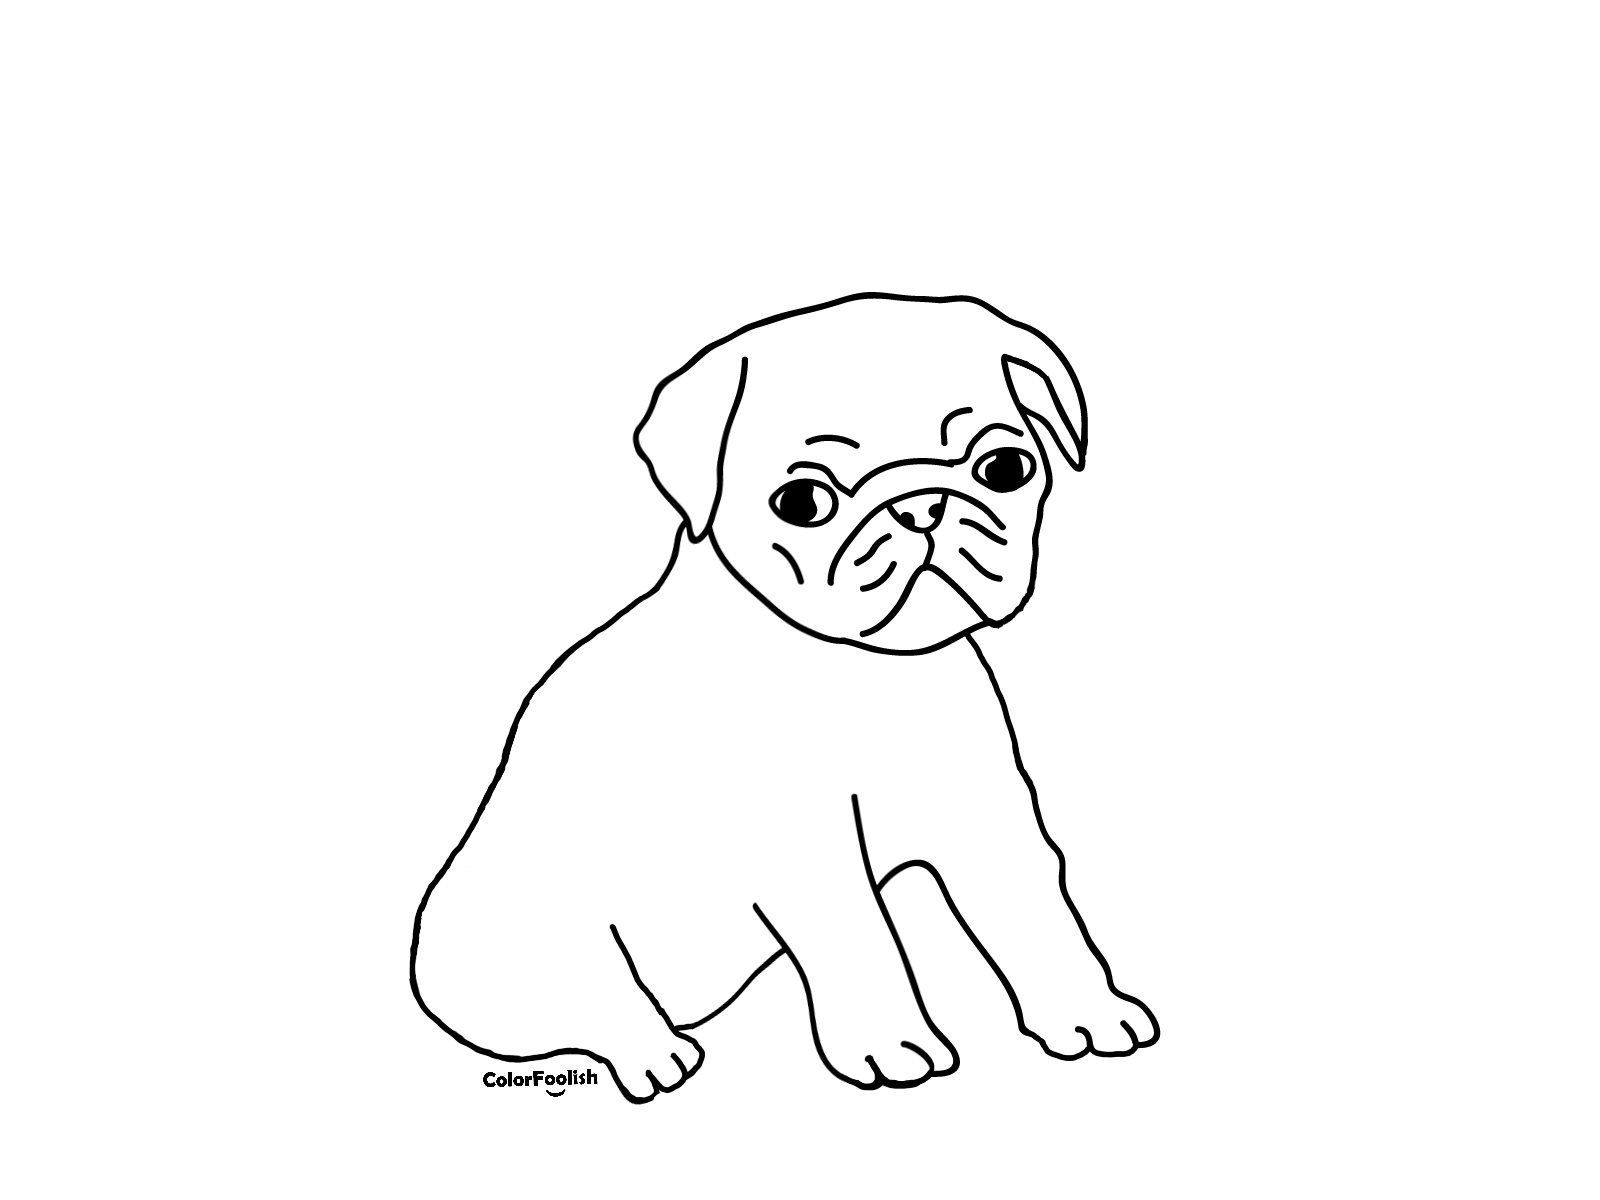 Coloring page of a pug puppy dog